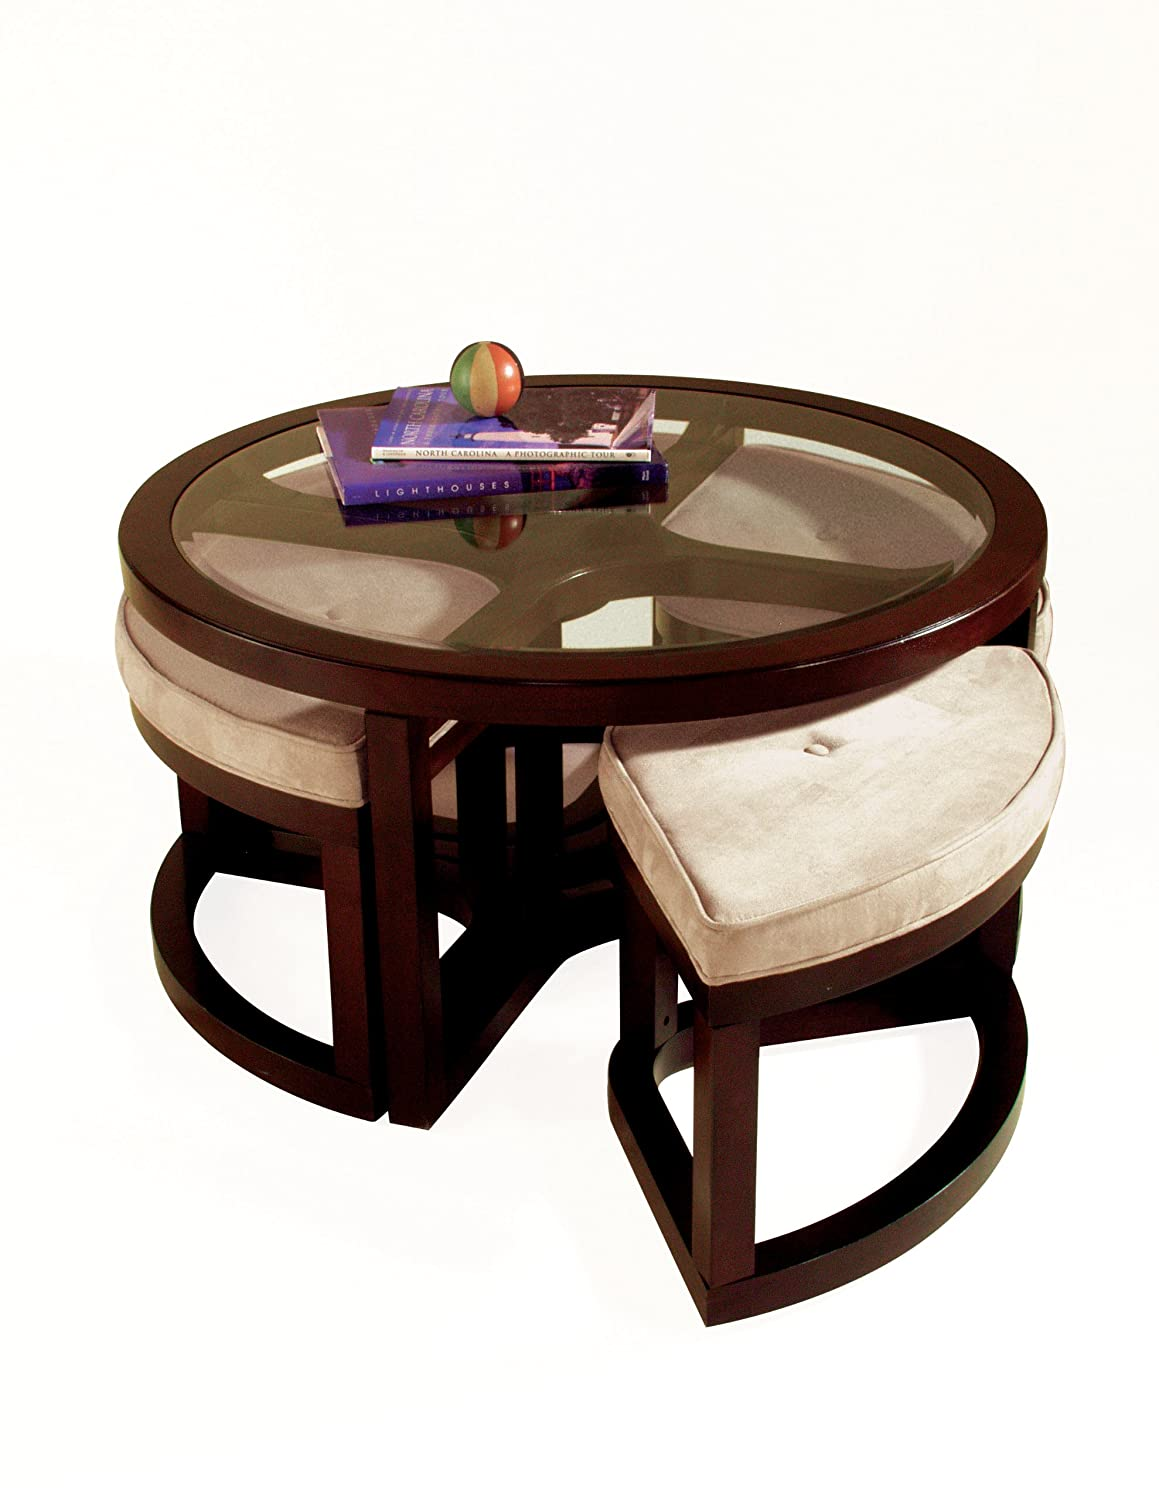 Round Ottoman Coffee Table fro small space